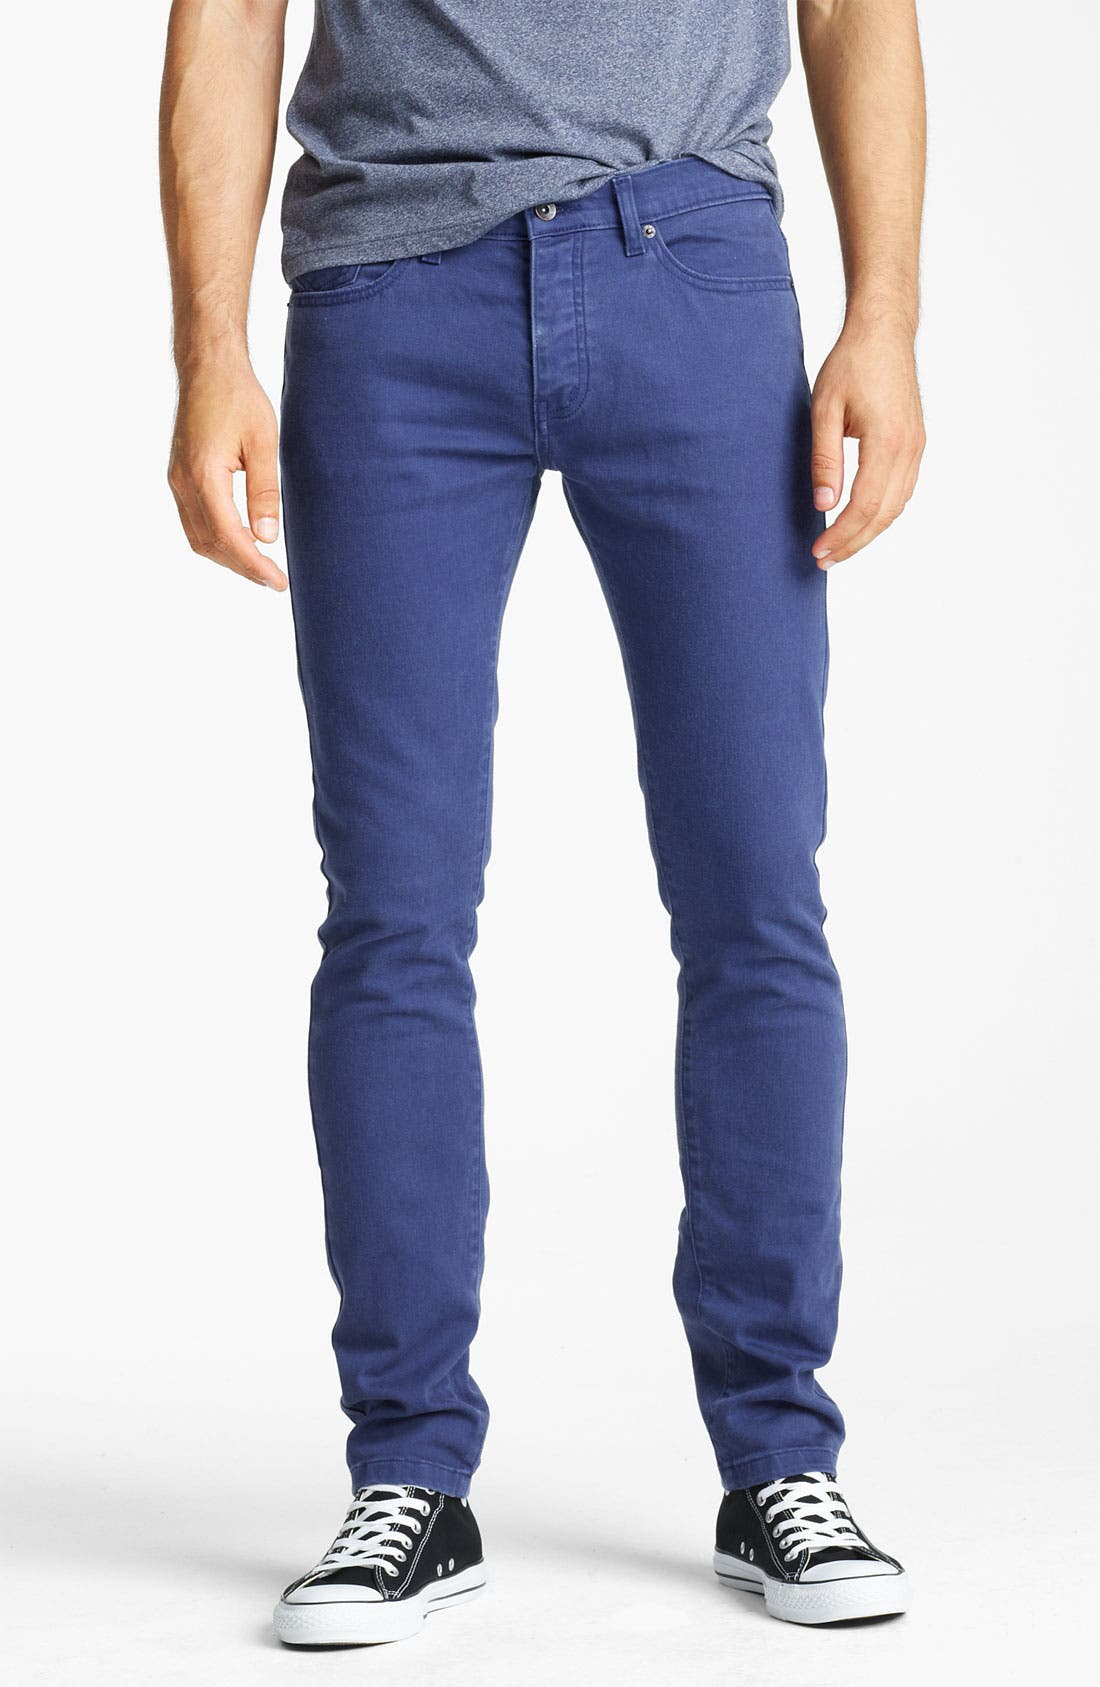 Alternate Image 1 Selected - Topman Stretch Skinny Jeans (Medieval Blue)